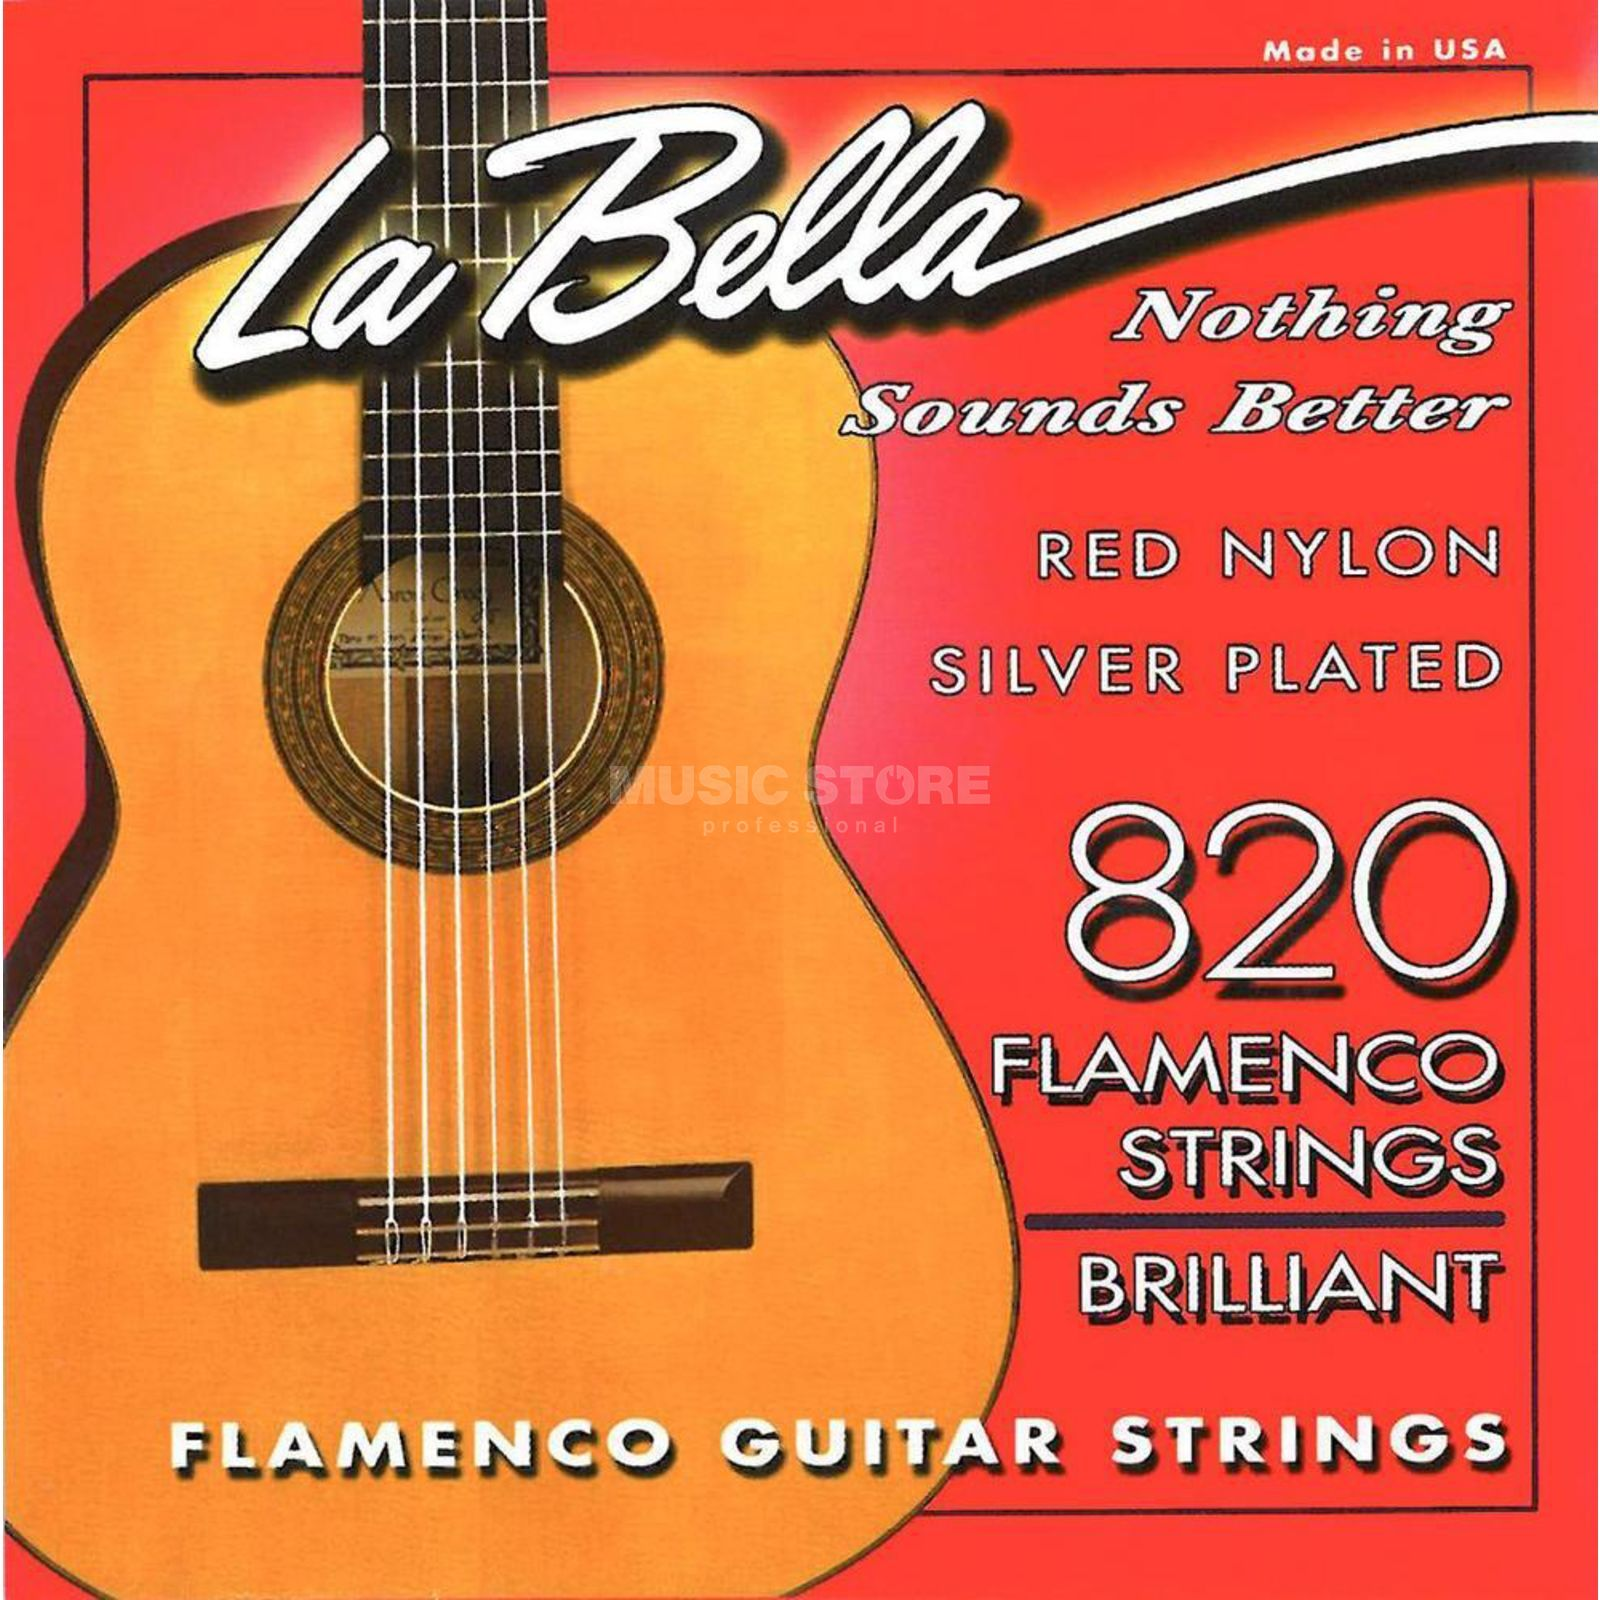 La Bella 820 Nylon Saiten Flamenco Red Nylon Silver Produktbild